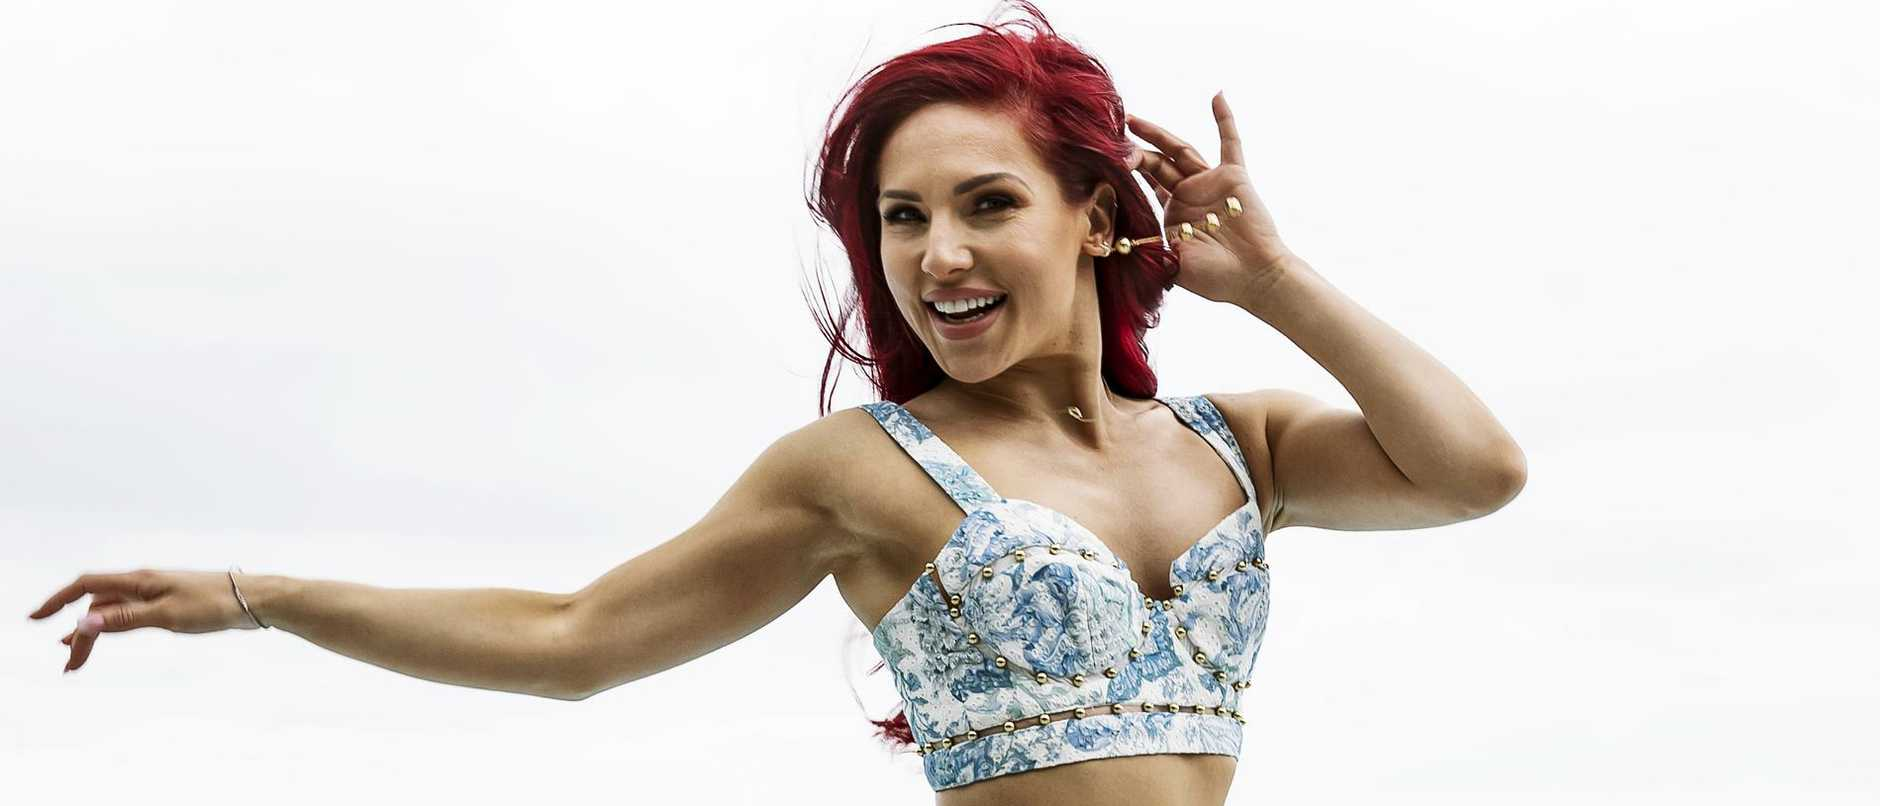 Sharna Burgess has almost 1 million followers on social media, counts Hollywood celebs among her biggest fans and might just be our next Bachelorette.